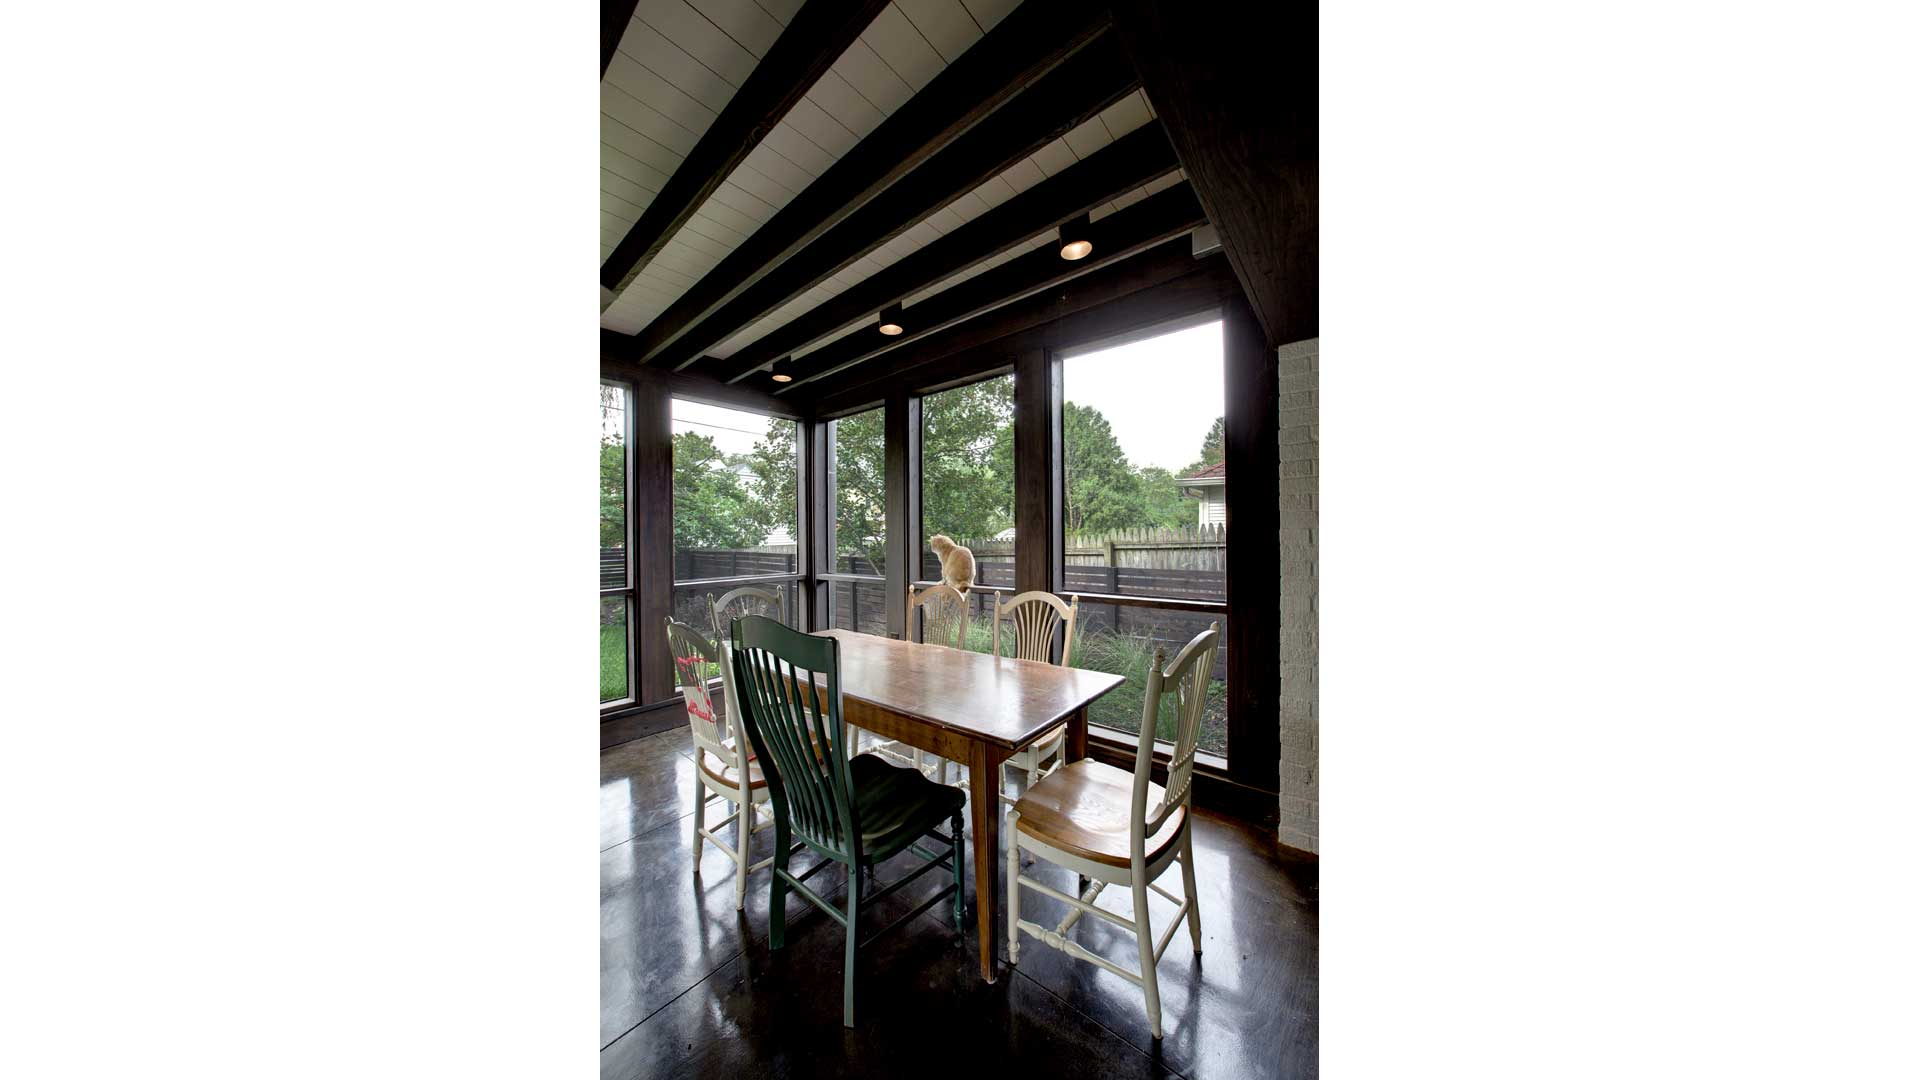 Screened porch exposes structure and roof decking above to continue the Tudor style. Stained concrete floor slopes outward with drainage detail at bottoms of wall. - Butler Tarkington Modern Tudor - Indianapolis, IN